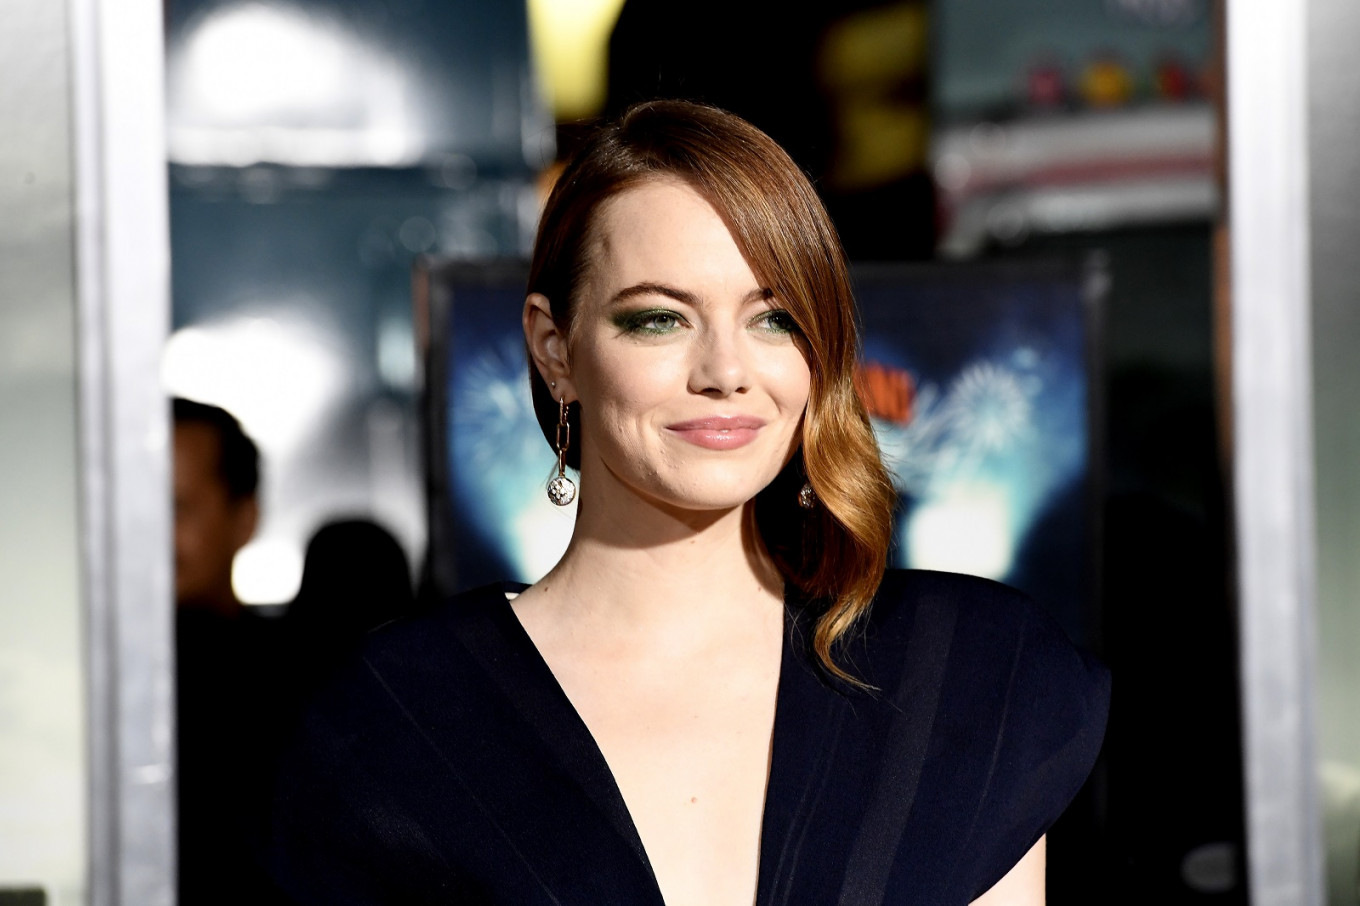 Emma Stone postpones wedding due to coronavirus pandemic: Report